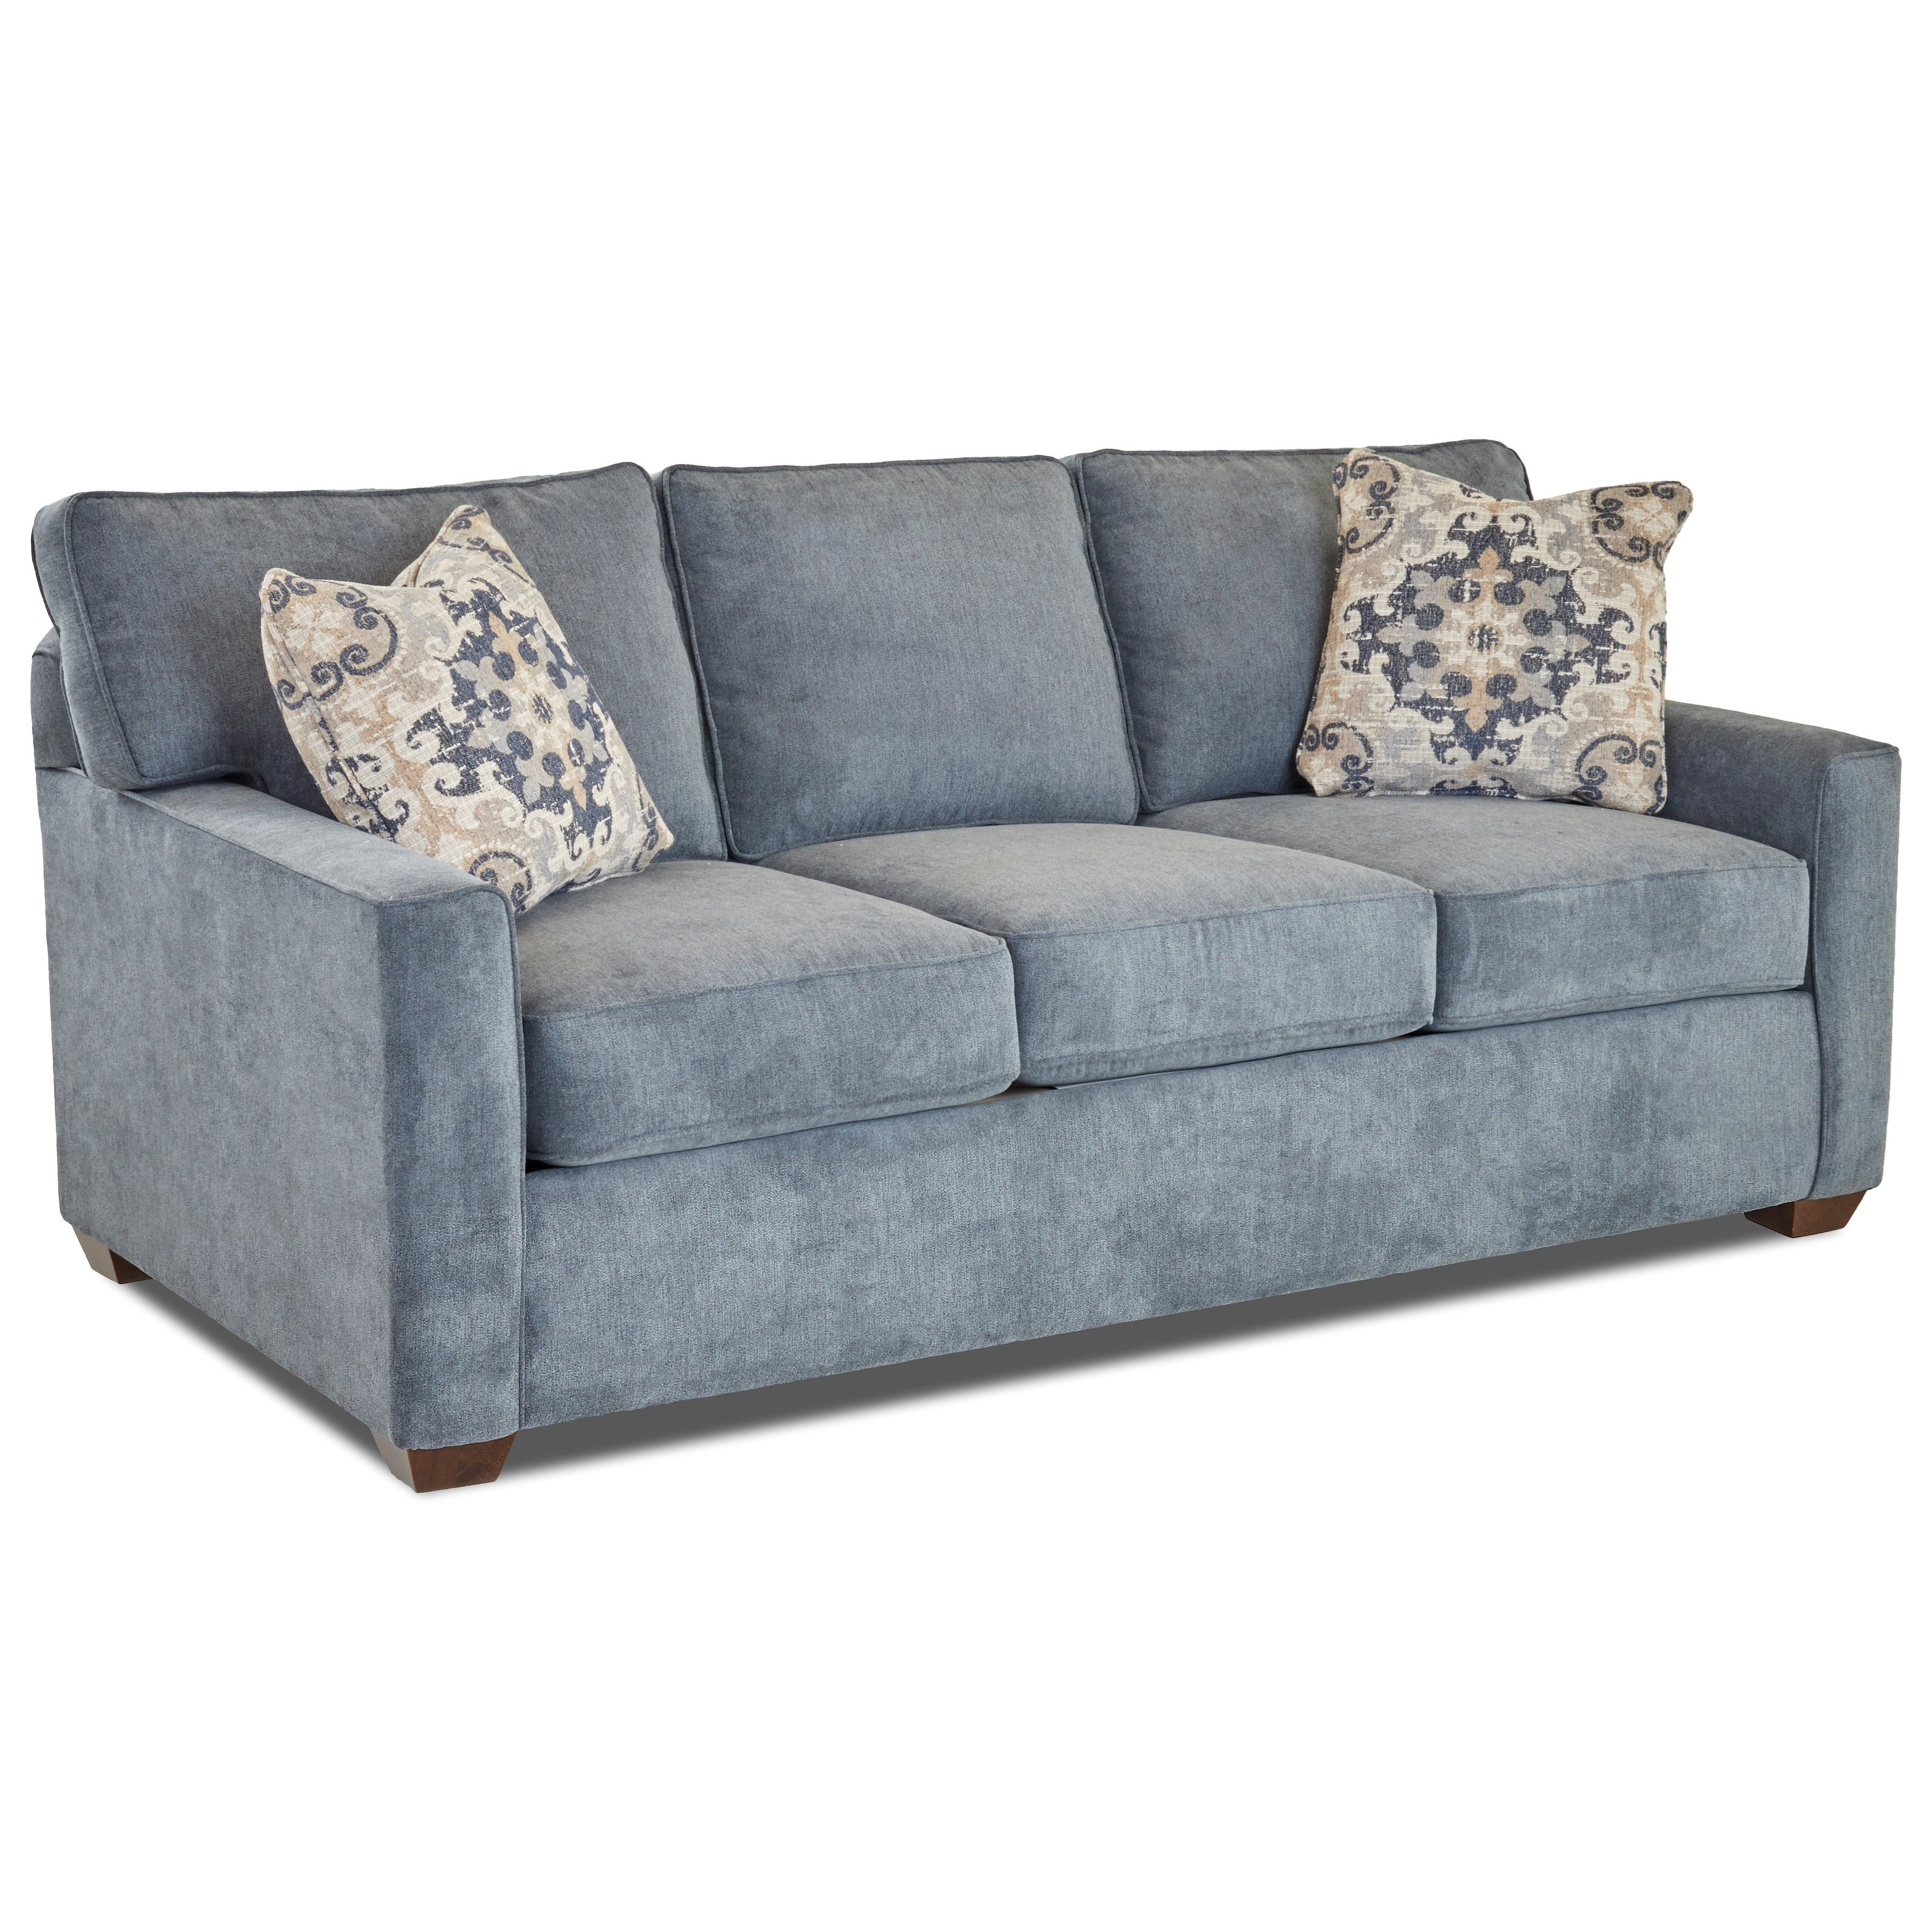 Pantego Dreamquest Sleeper Sofa by Klaussner at Van Hill Furniture